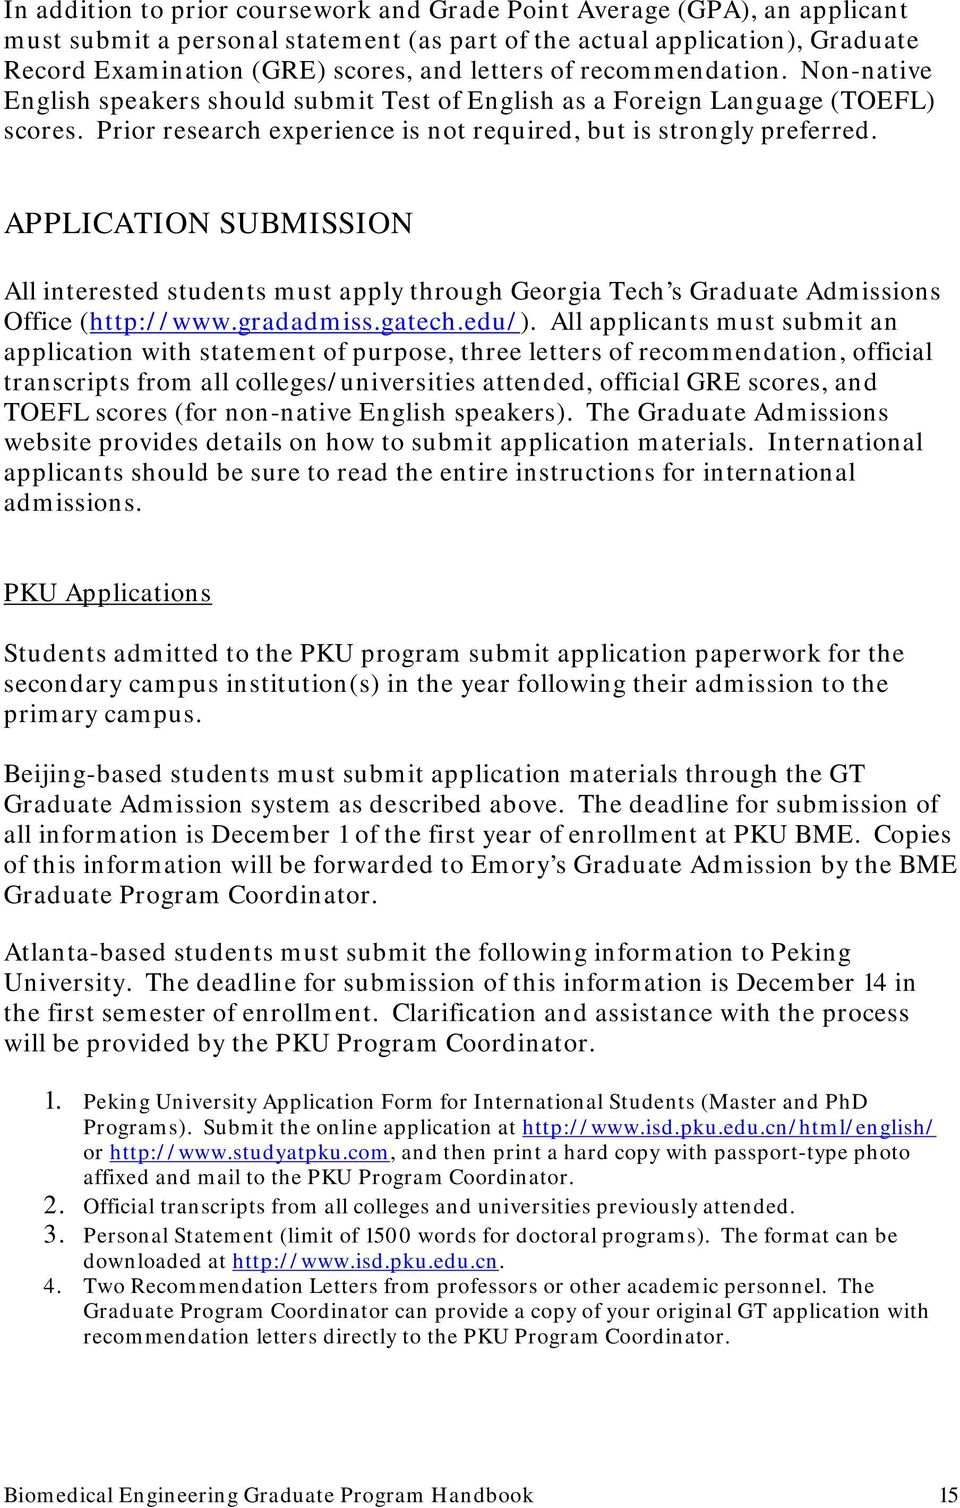 APPLICATION SUBMISSION All interested students must apply through Georgia Tech s Graduate Admissions Office (http://www.gradadmiss.gatech.edu/).